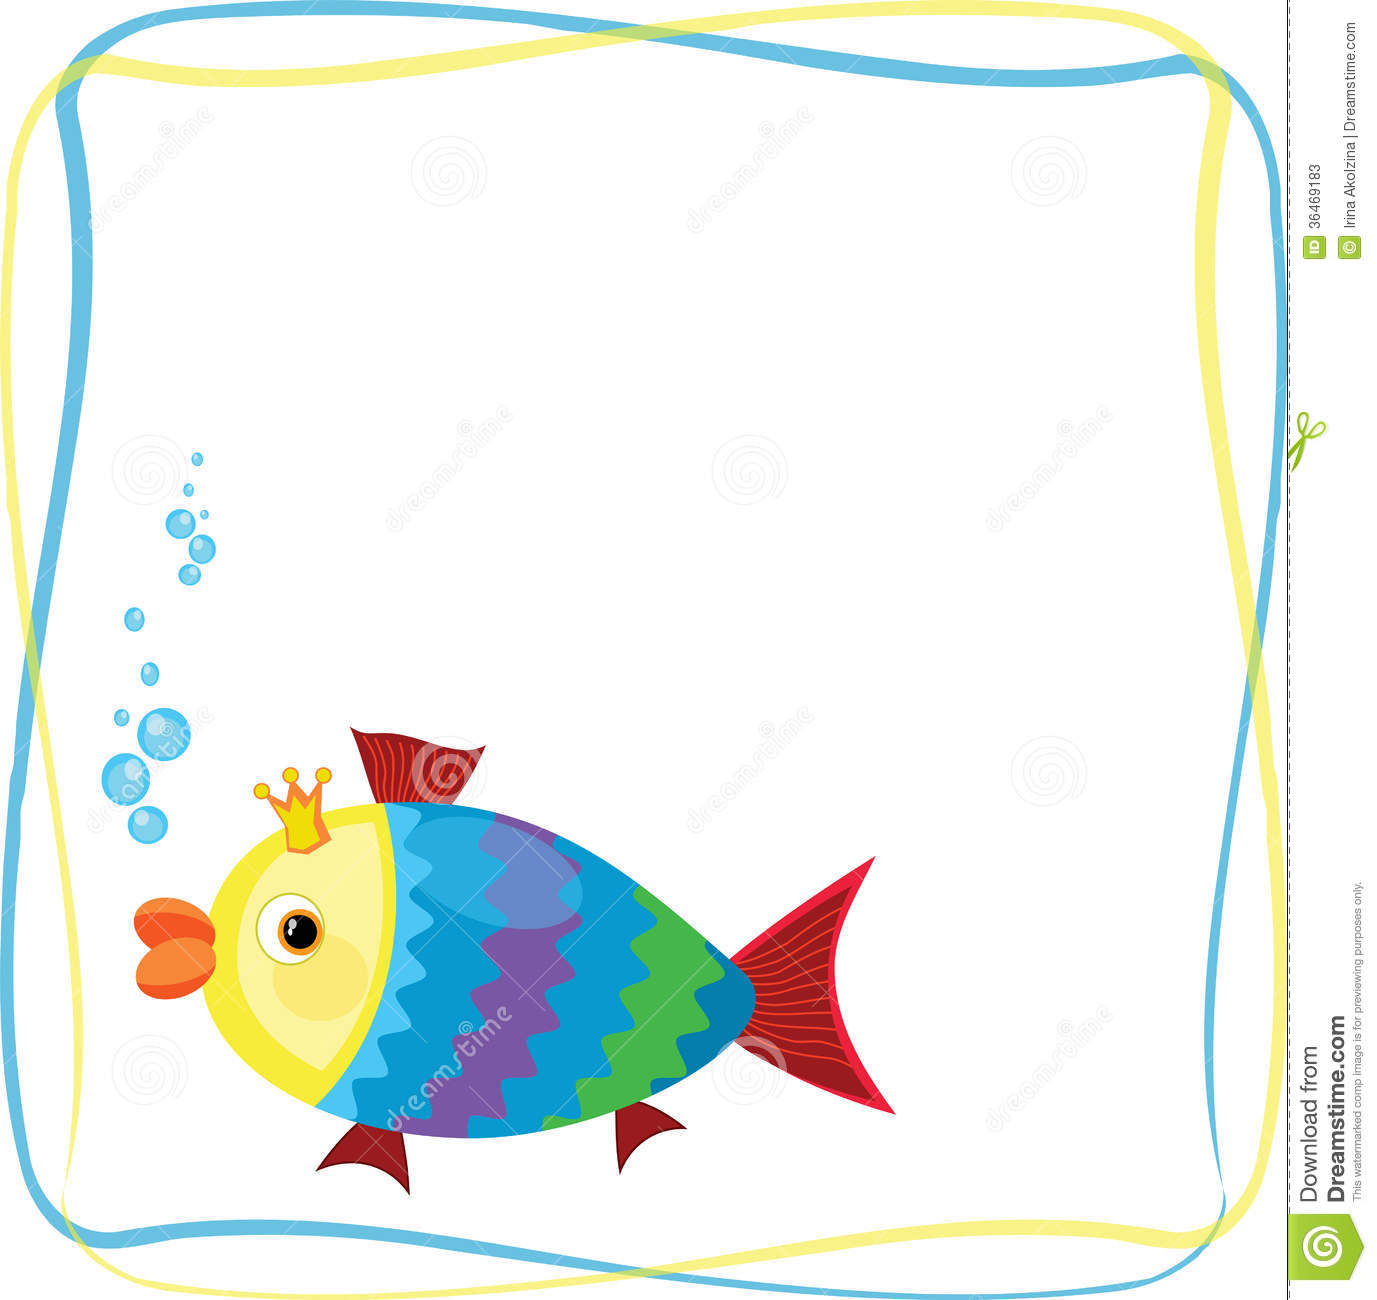 Frame with fish stock vector. Illustration of life, cartoon - 36469183